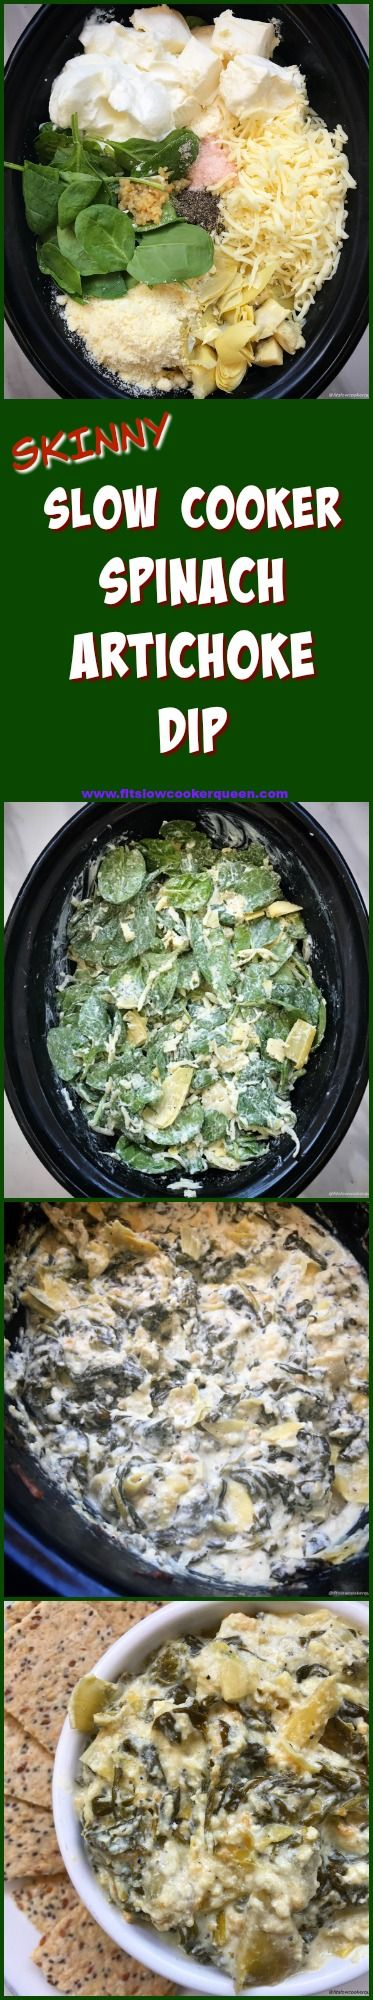 Spinach artichoke dip is served as a shared appetizer at not just restaurants but at potlucks and sports gatherings as well. This skinny, slow cooker version will please any crowd!